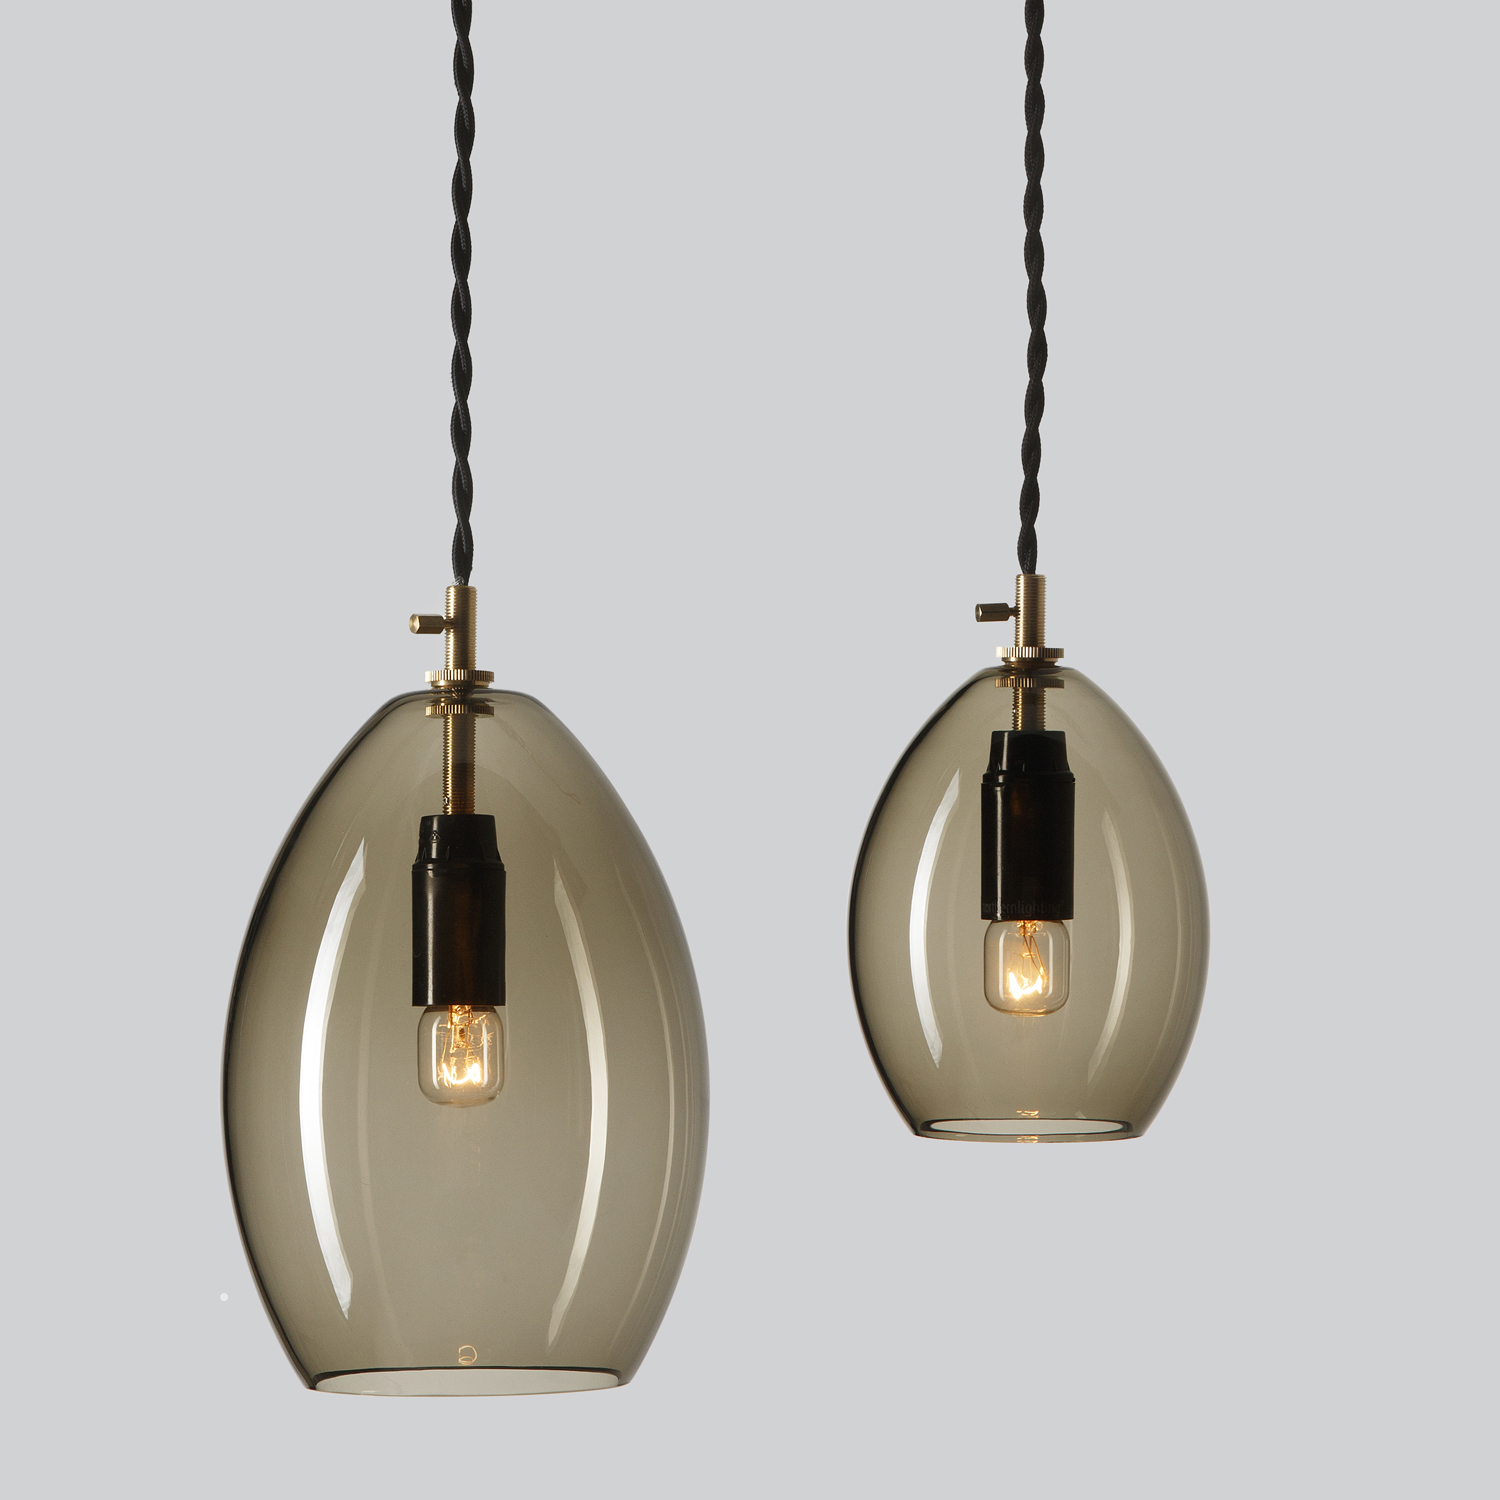 Northern Lighting Unika Pendant Light in Grey